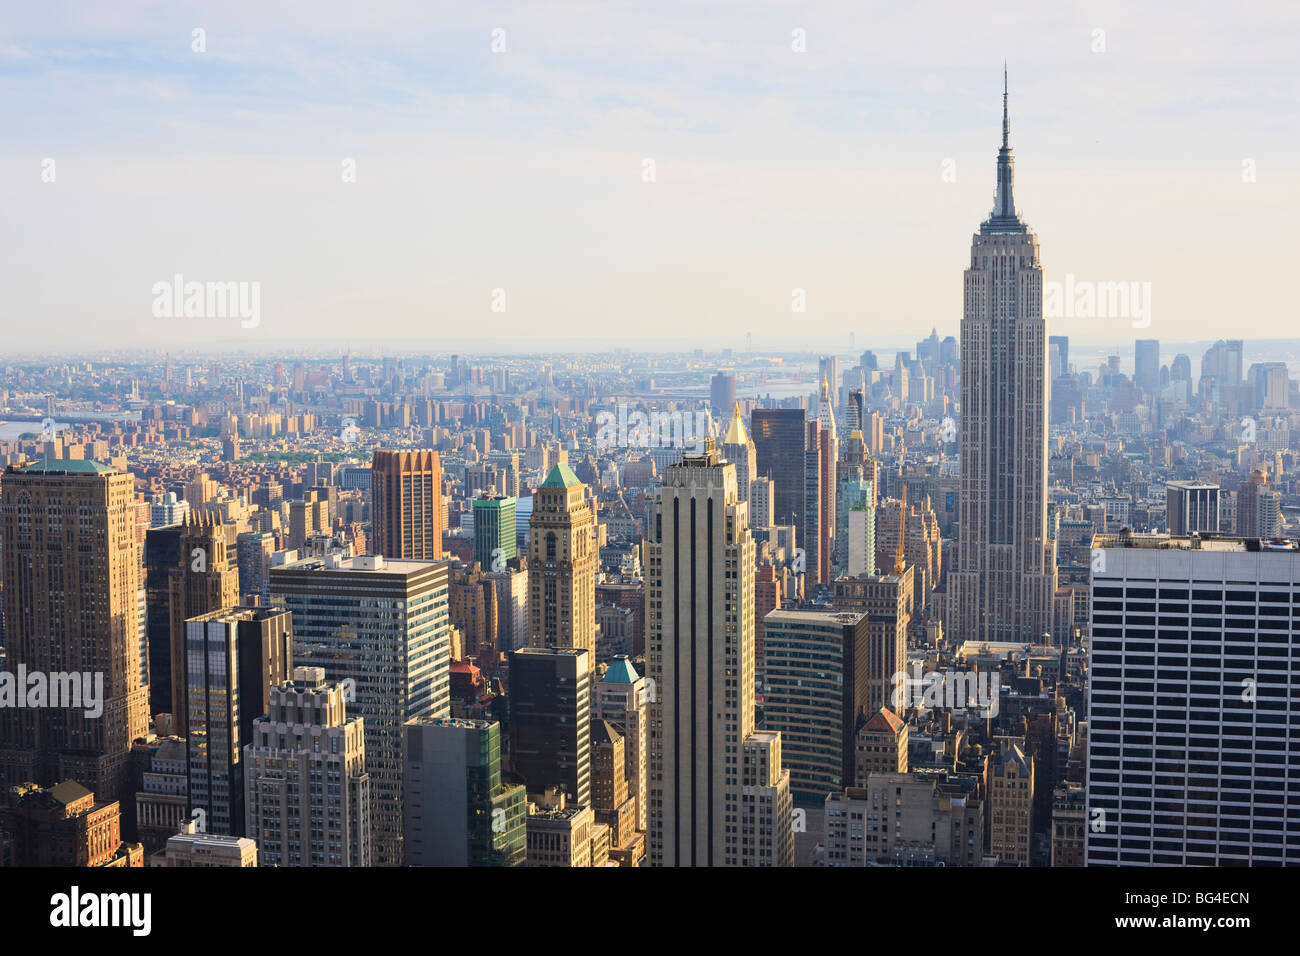 Empire State Building and Manhattan cityscape, New York City, New York, United States of America, North America - Stock Image